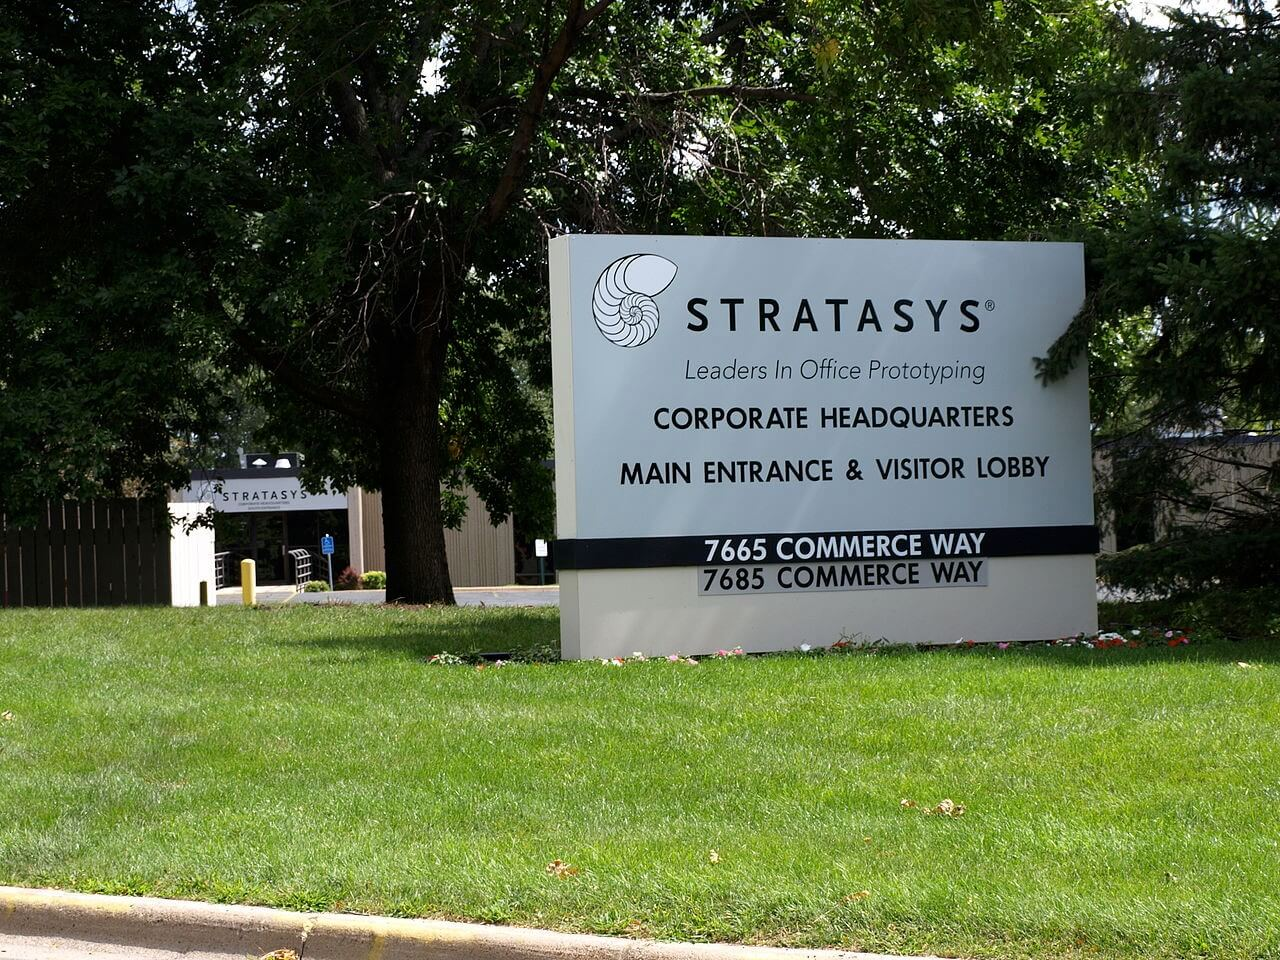 Stratasys-headquarters-one-of-the-leaders-in-3D printing.jpg